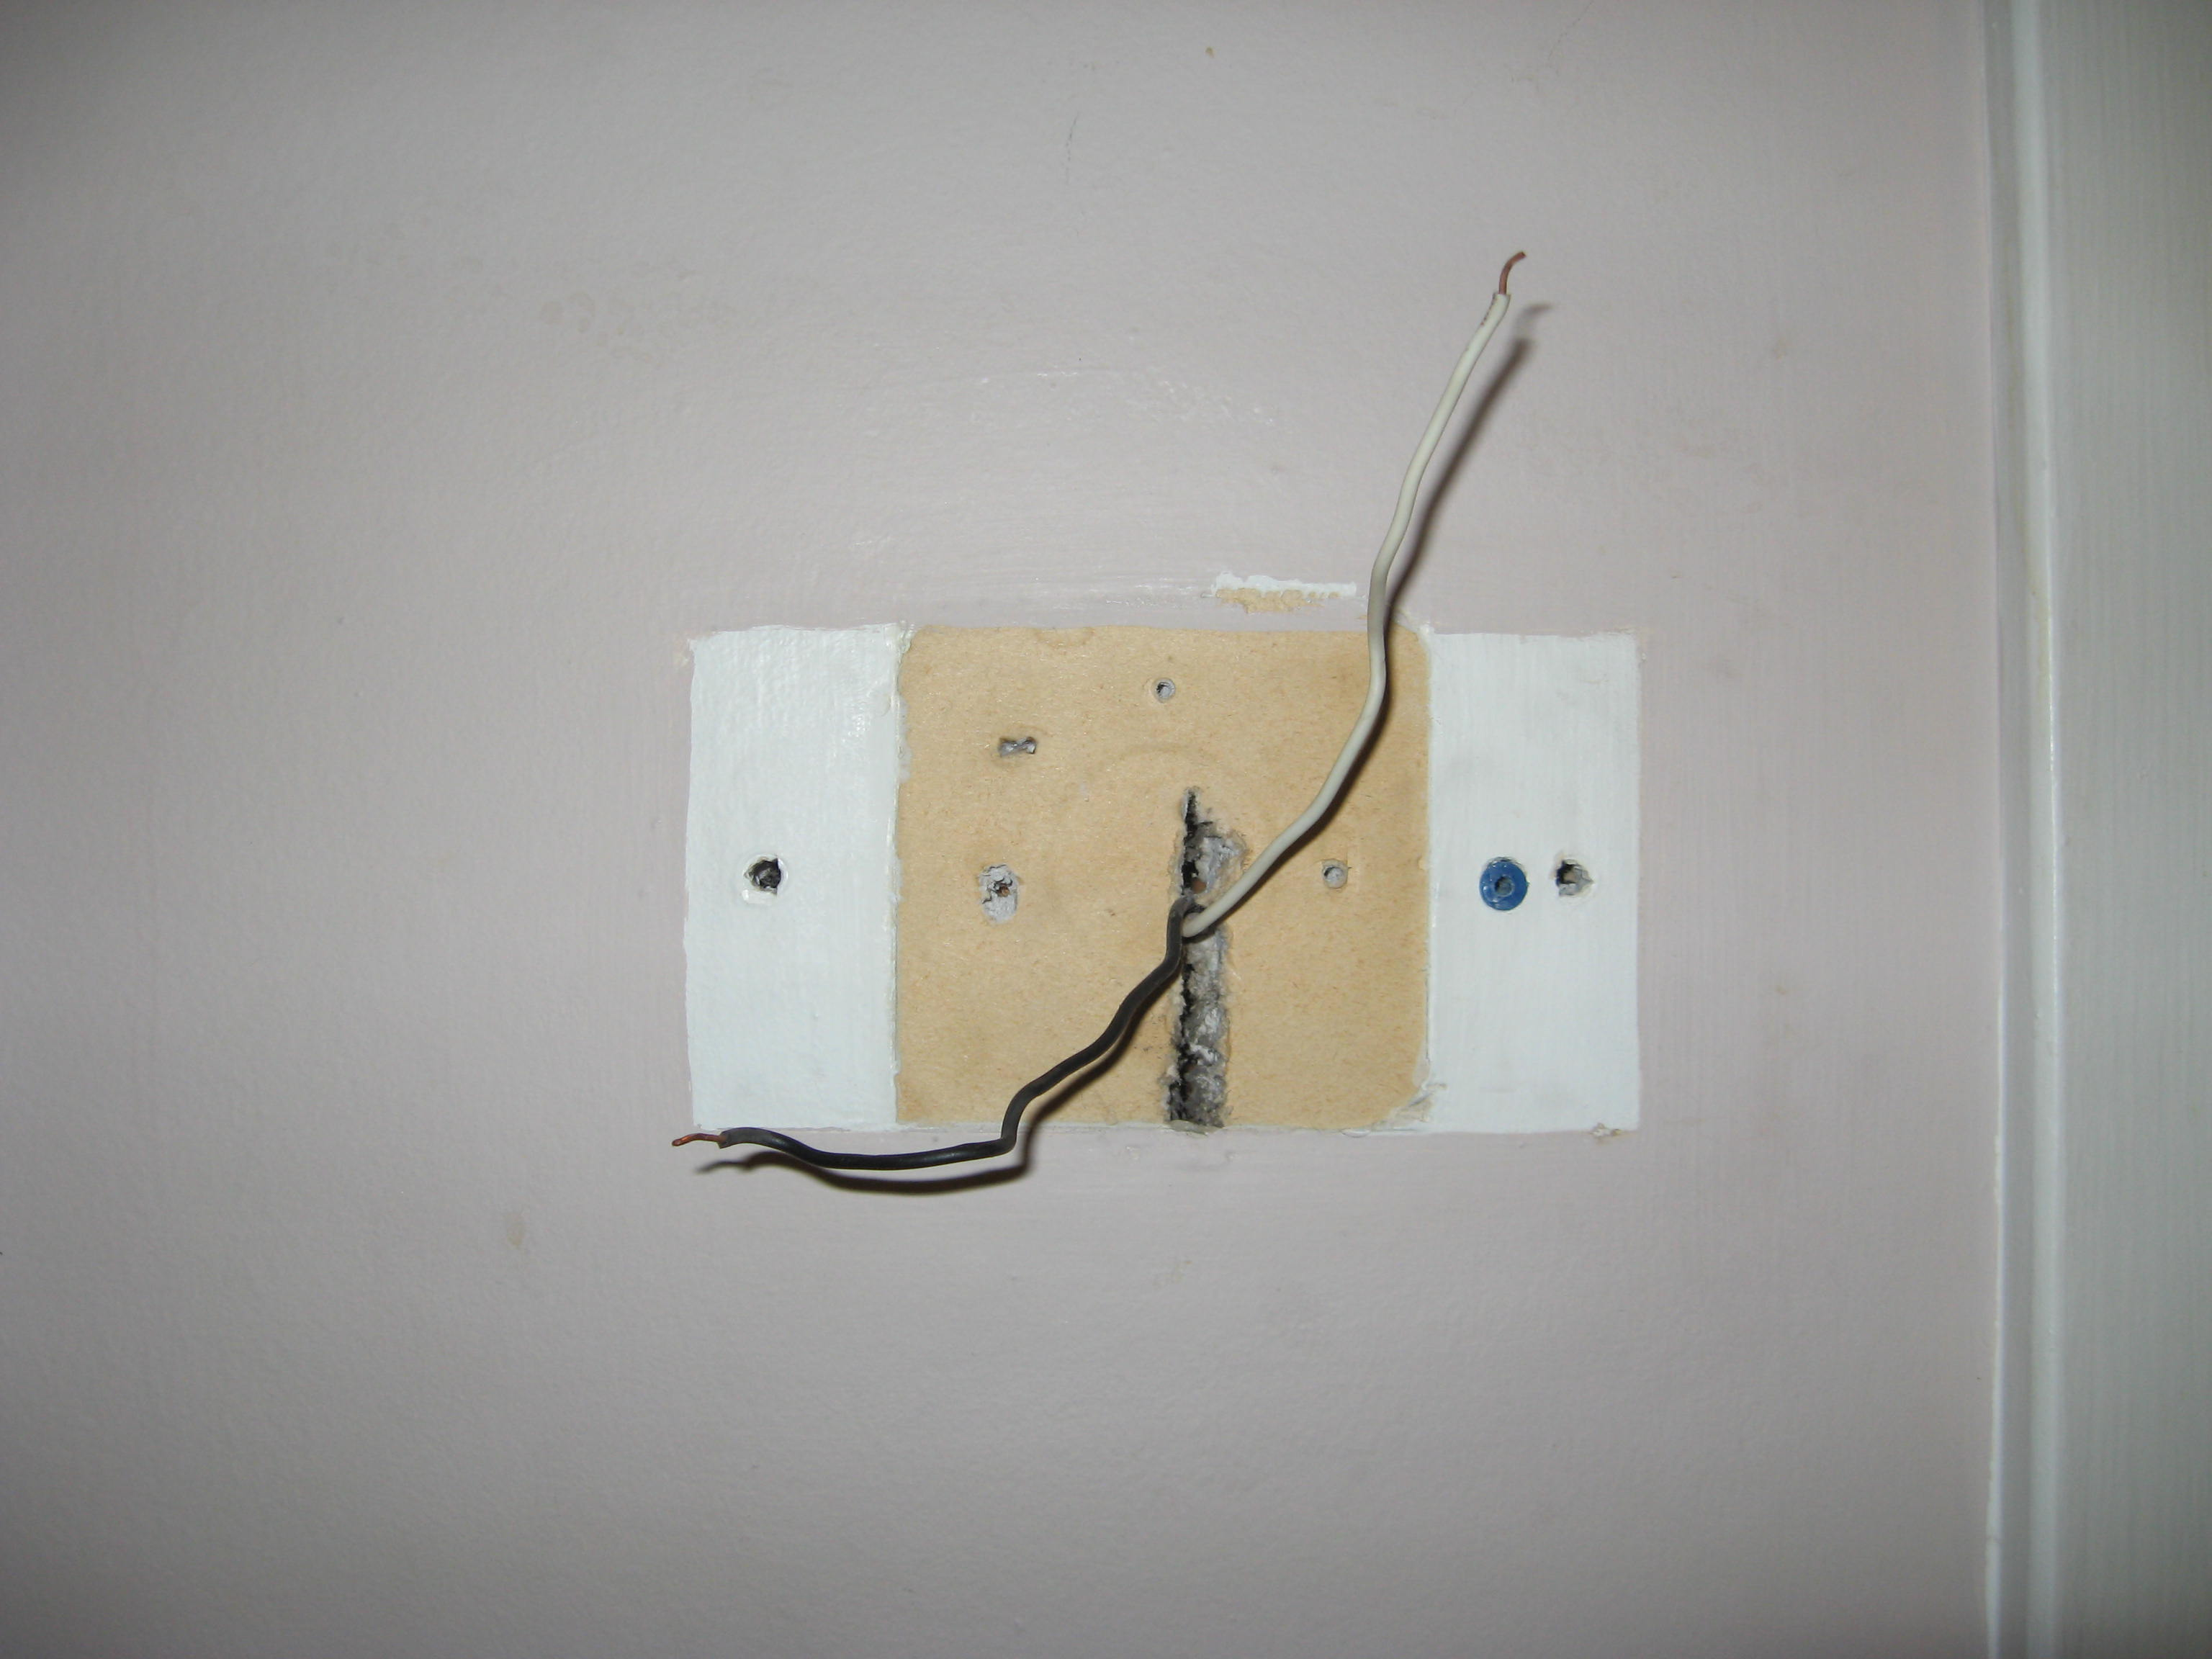 Install Programmable Thermostat The Renovators Wife Blog Old House Wiring After